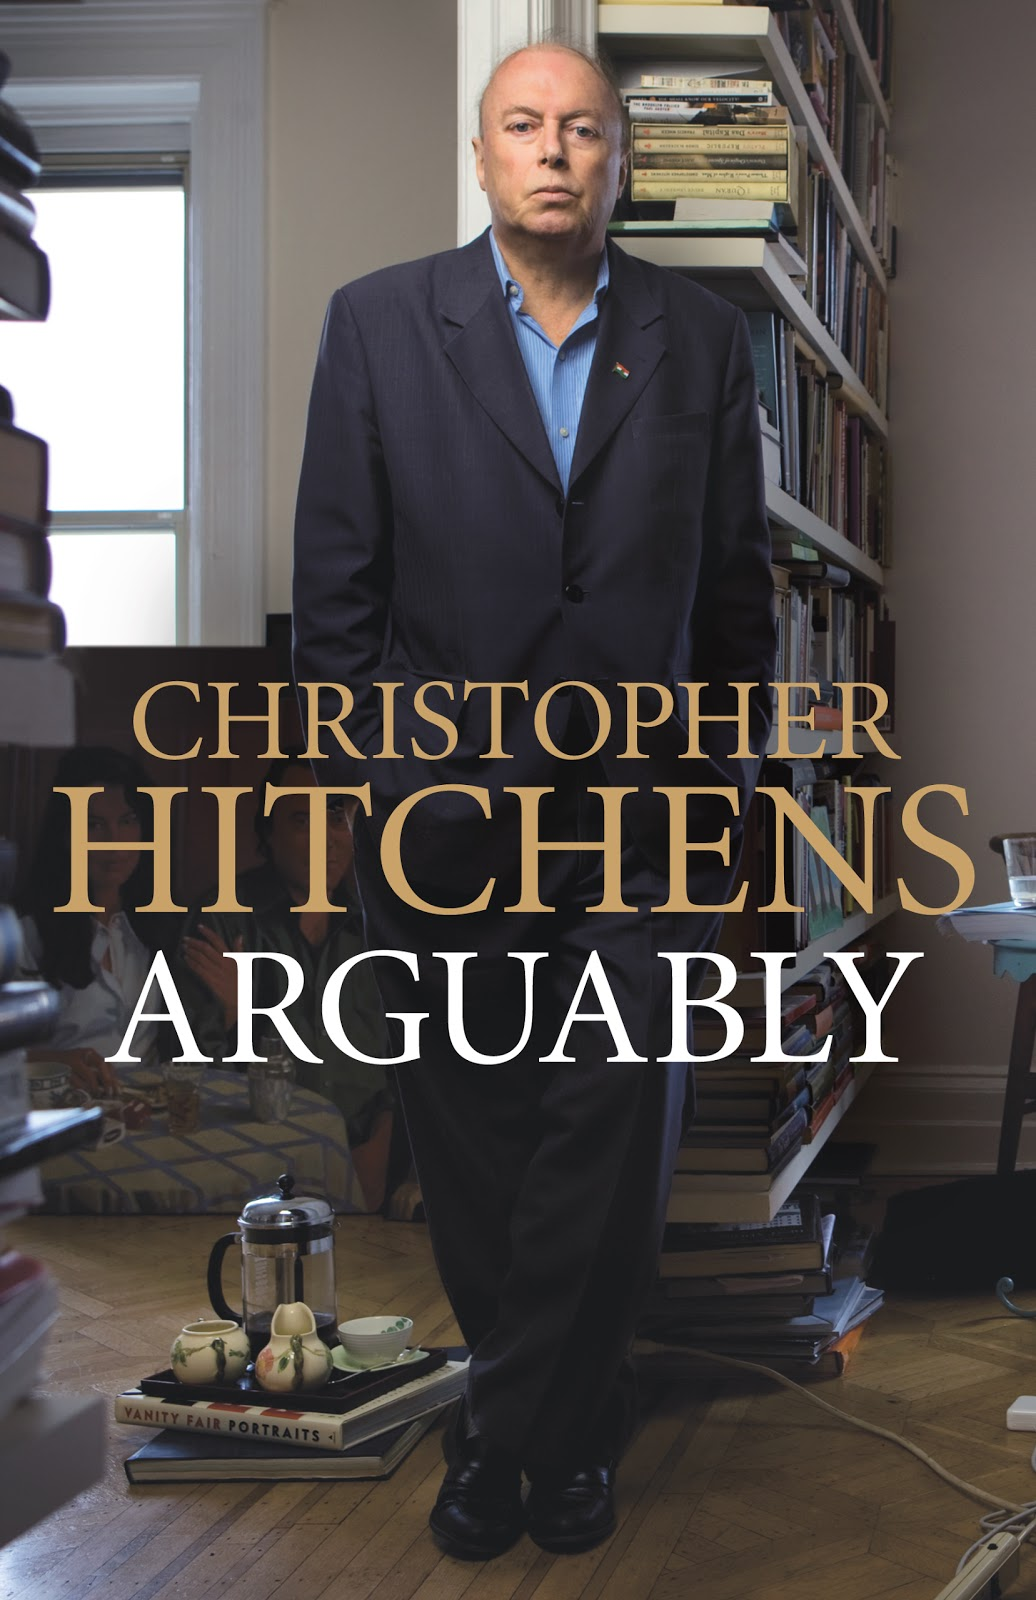 arguably essays by christopher hitchens torrent Written by christopher hitchens, narrated by simon prebble download the app and start listening to arguably: essays by christopher hitchens today - free with a.